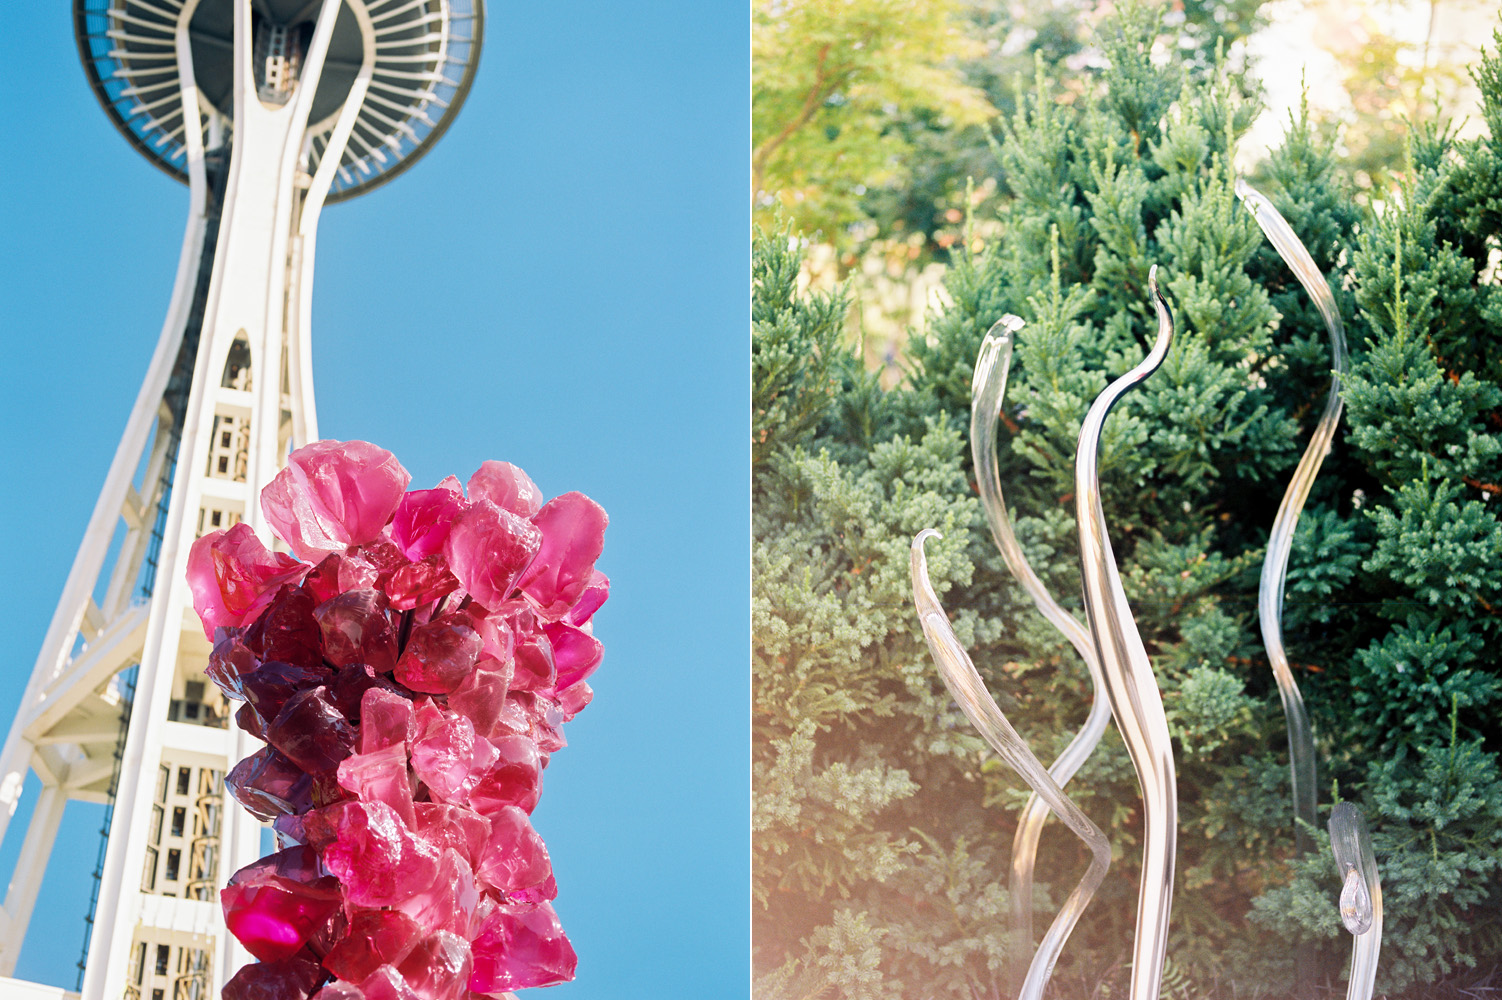 chihuly garden of glass space needle.jpg